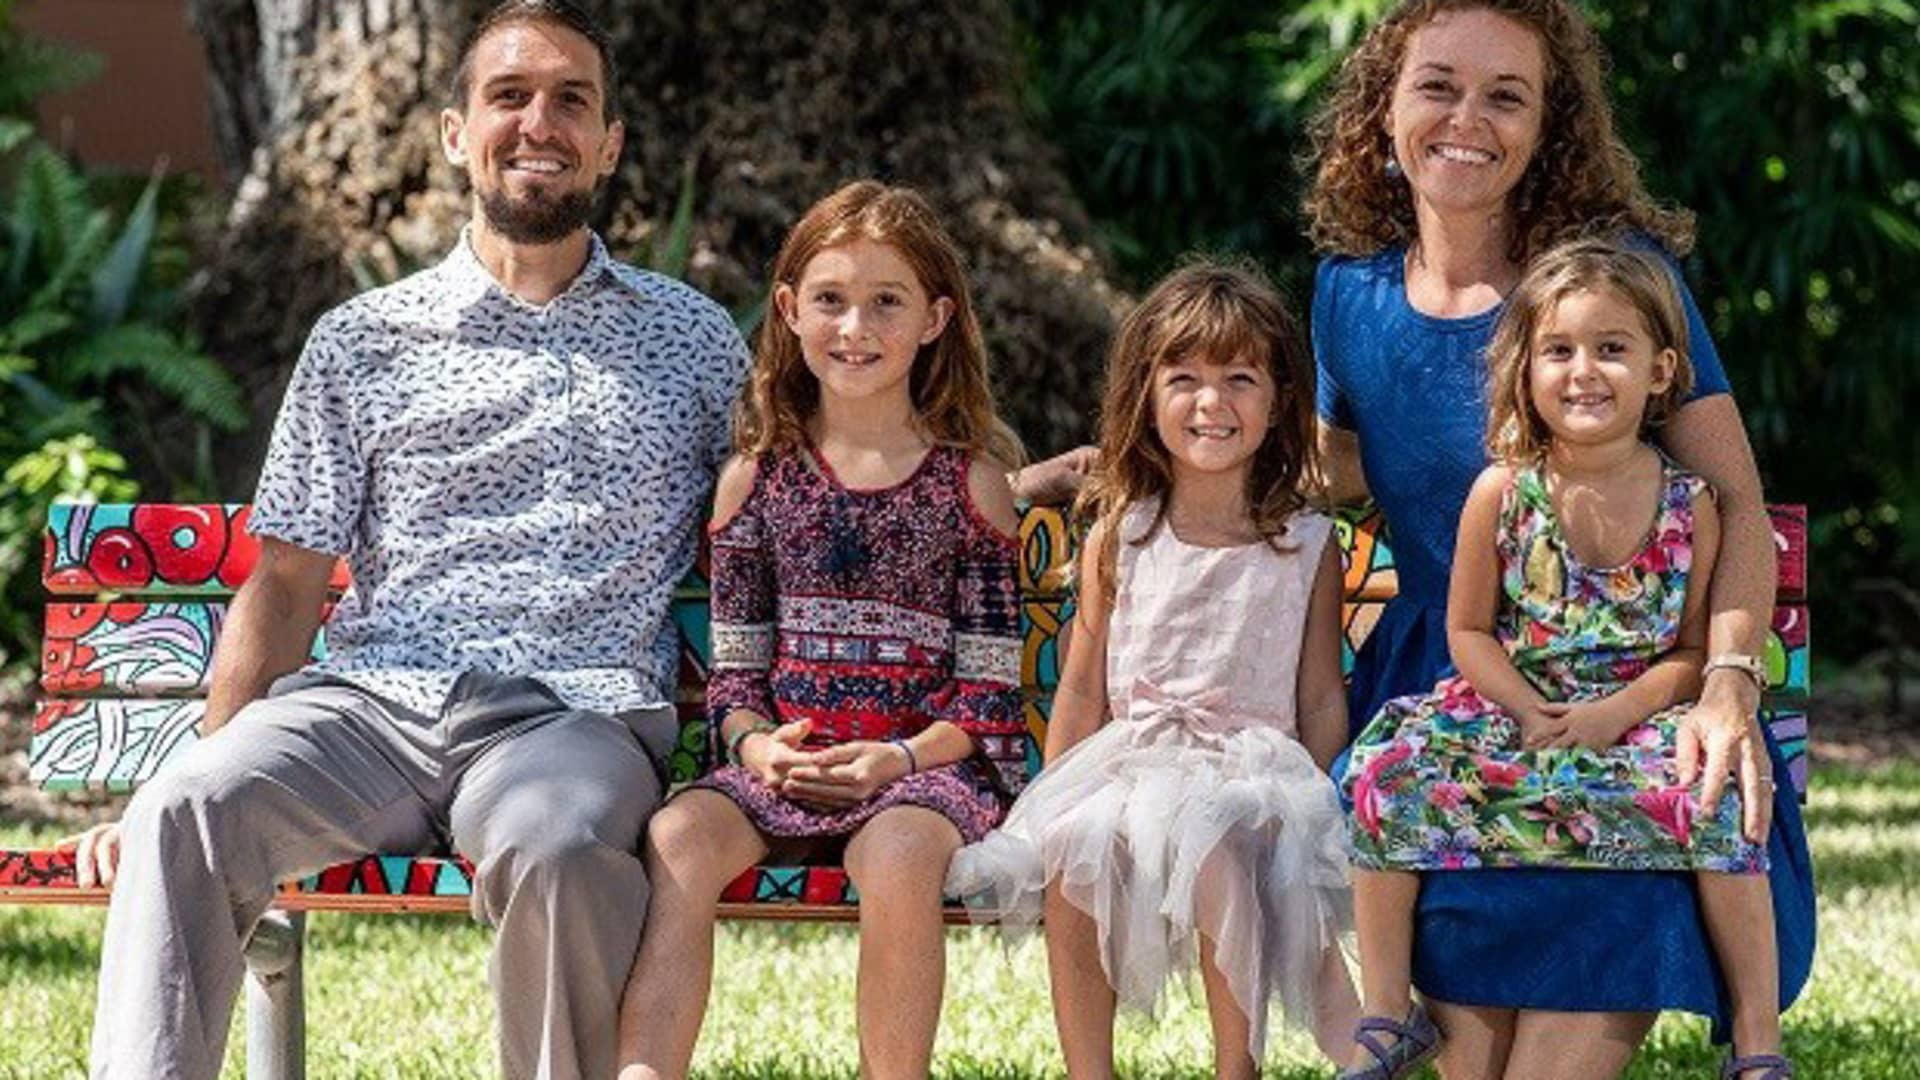 Tanja and Jared Vidovic with their daughters.